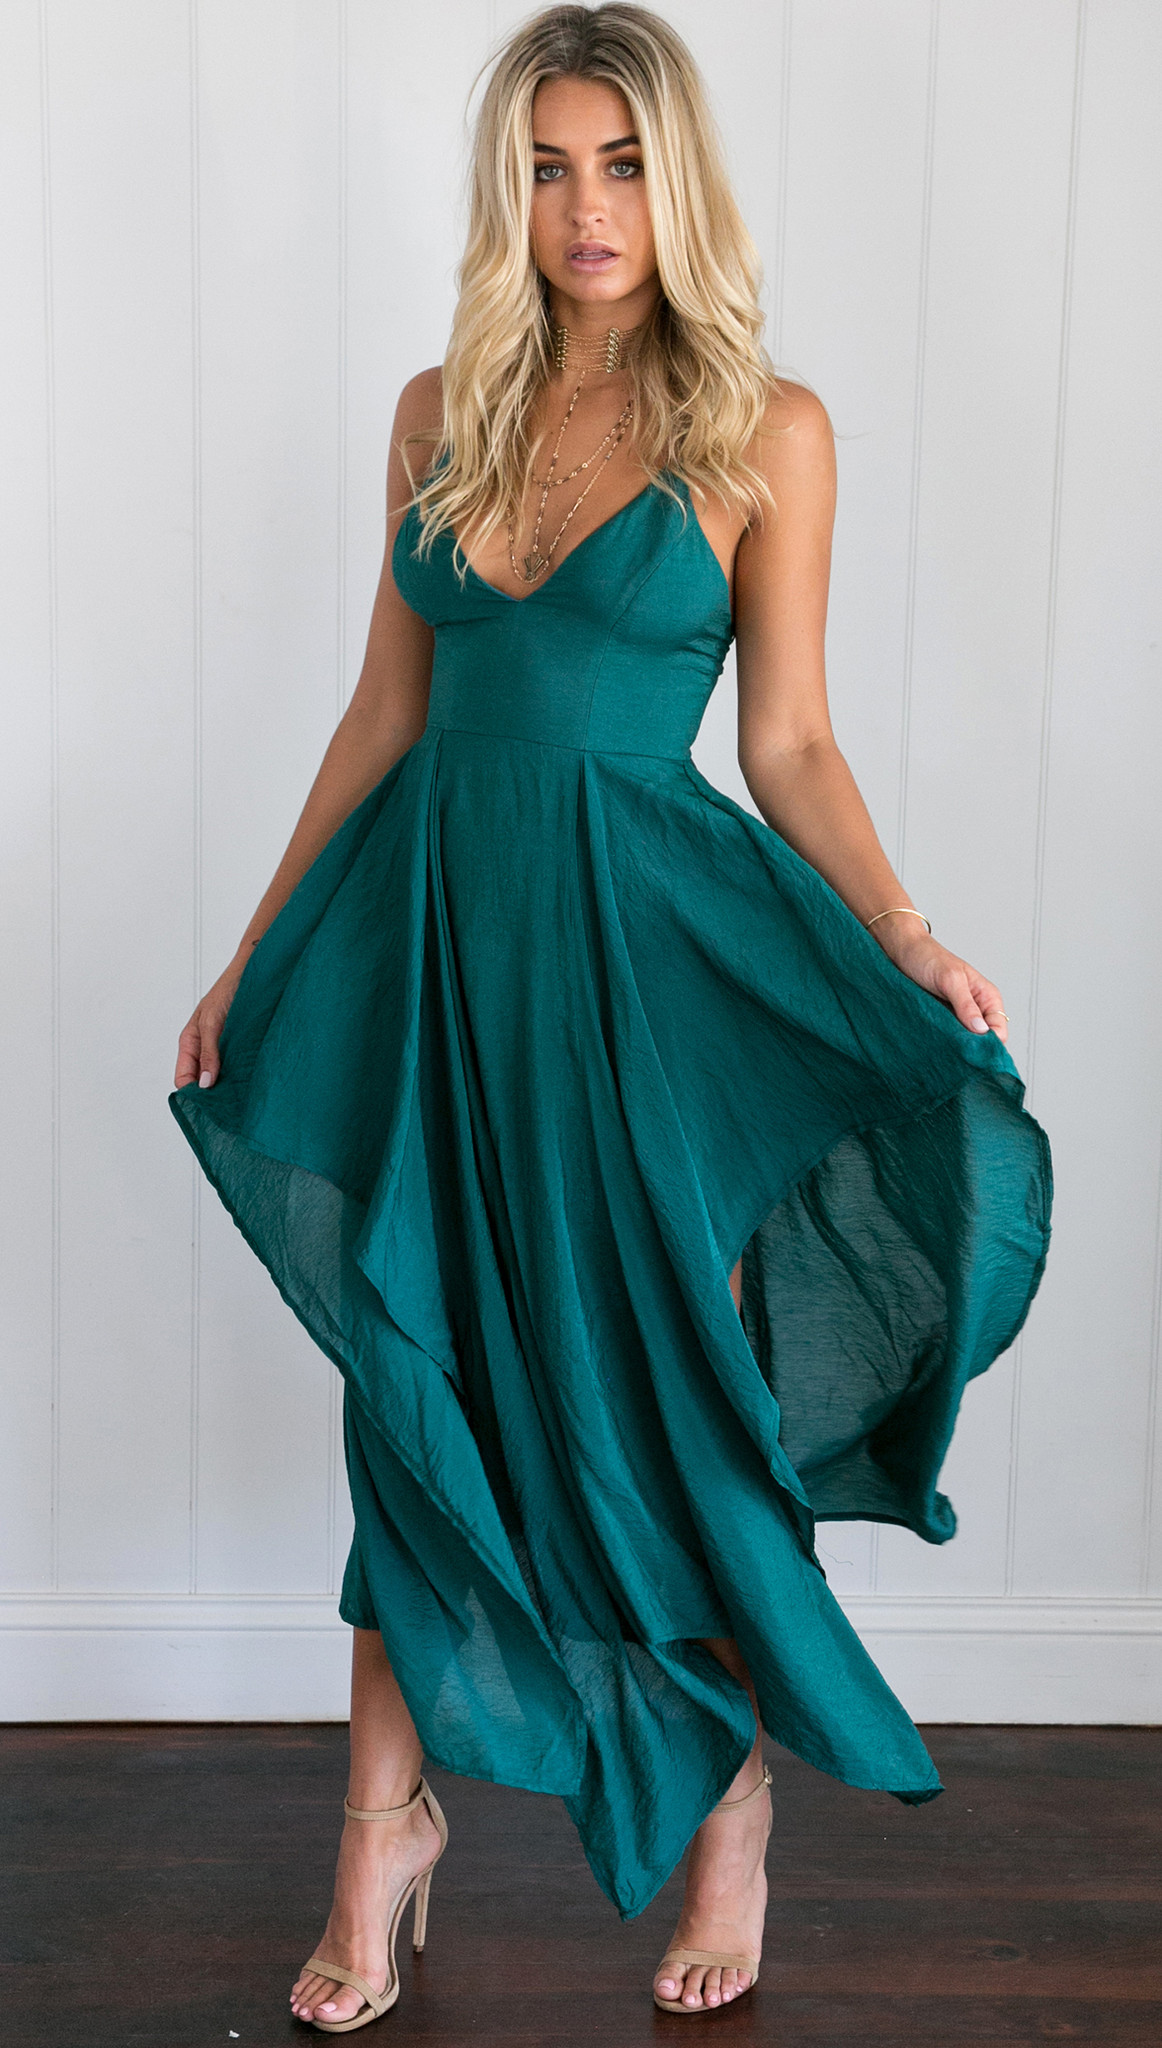 Emerald Prom Dress, Sexy Woman Dress, Sexy Maxi Dress, Short Party ...